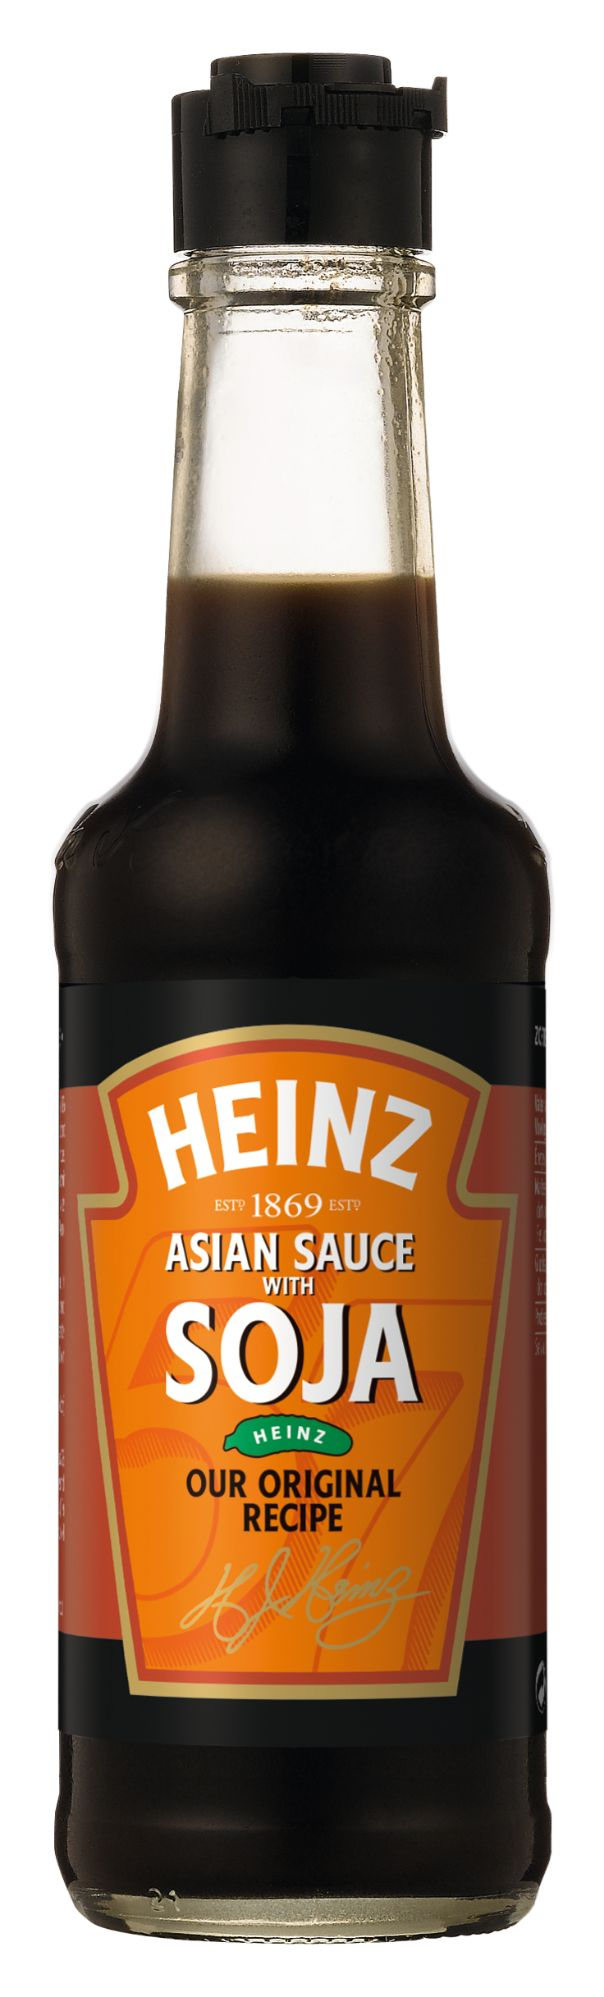 Heinz Asian Sauce with Soja 150ml image